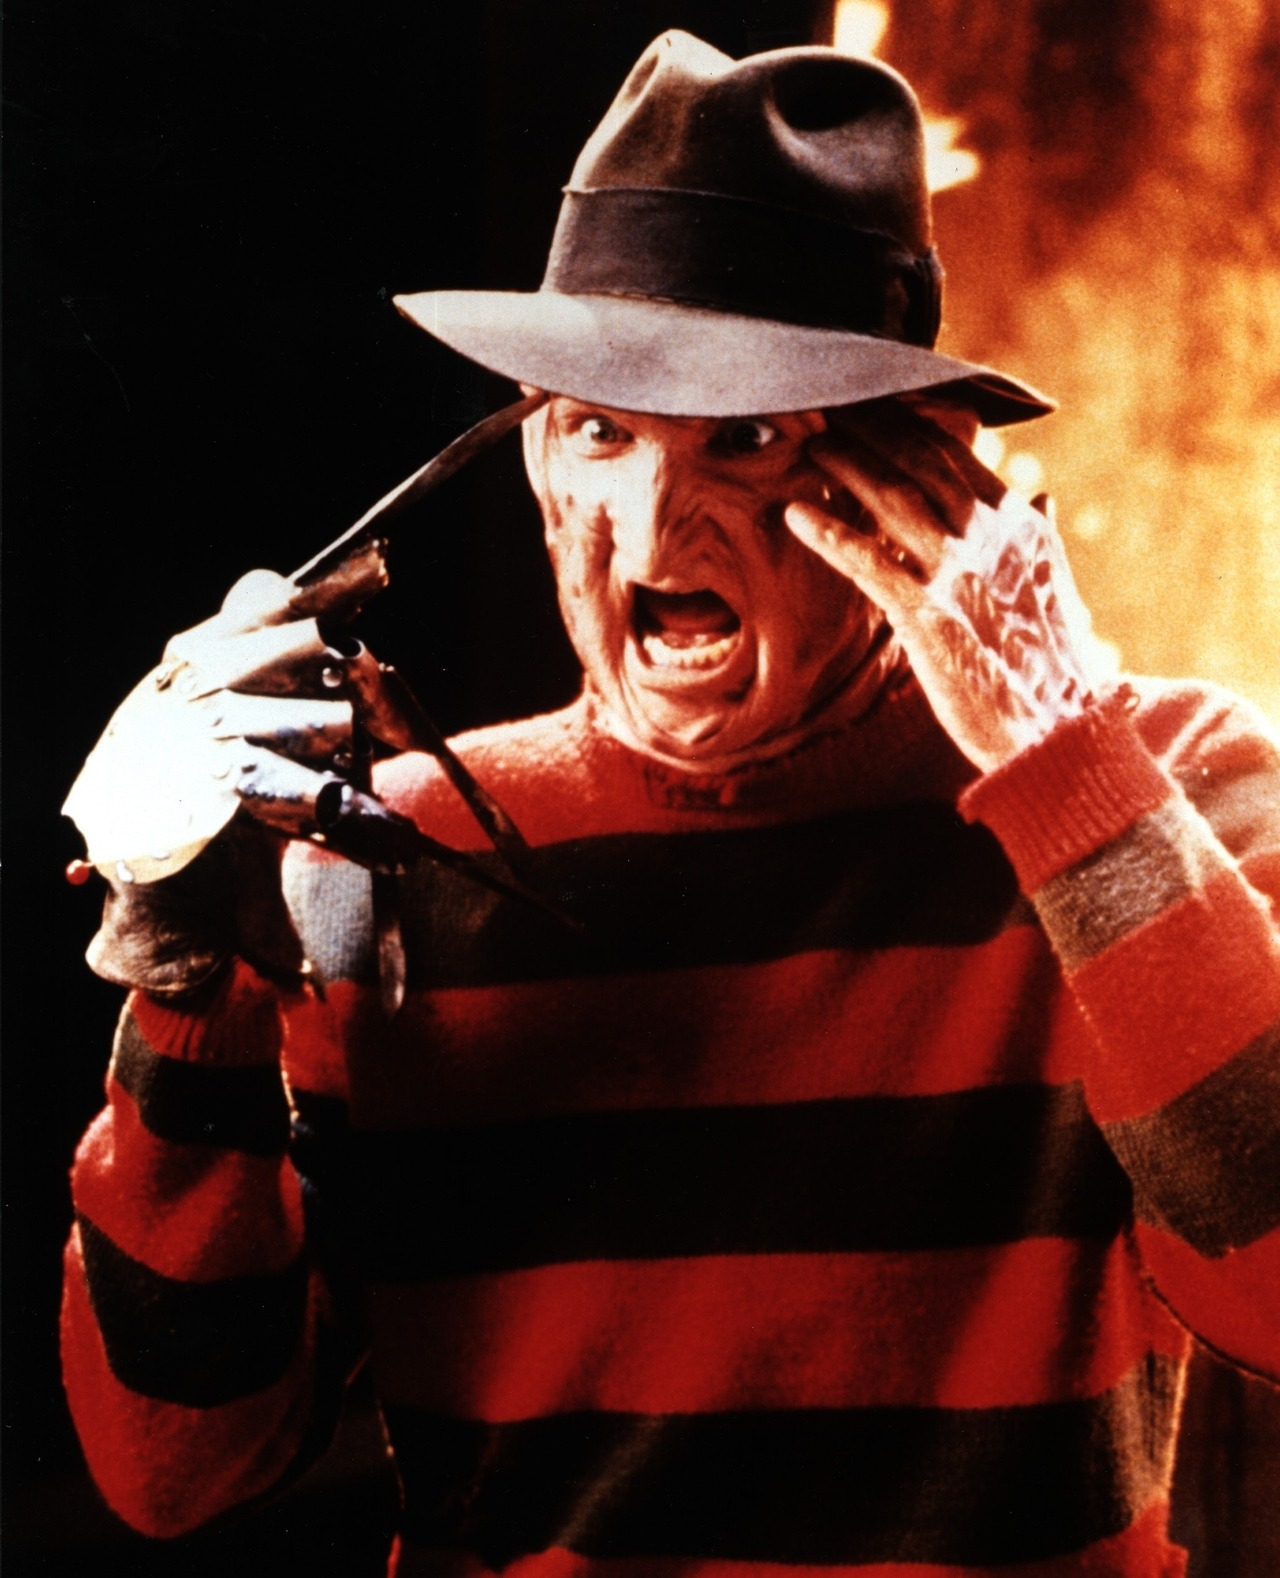 FREDDY KRUEGER Freddy's sweater was described as red and yellow in the script and the idea was that whatever Freddy changed into would be yellow and red as well. Wes Craven later changed the colors to red and green, the two most contrasting colors to the human retina. A Nightmare on Elm Street (1984), directed by: Wes Craven, costume design by: Dana Lyman